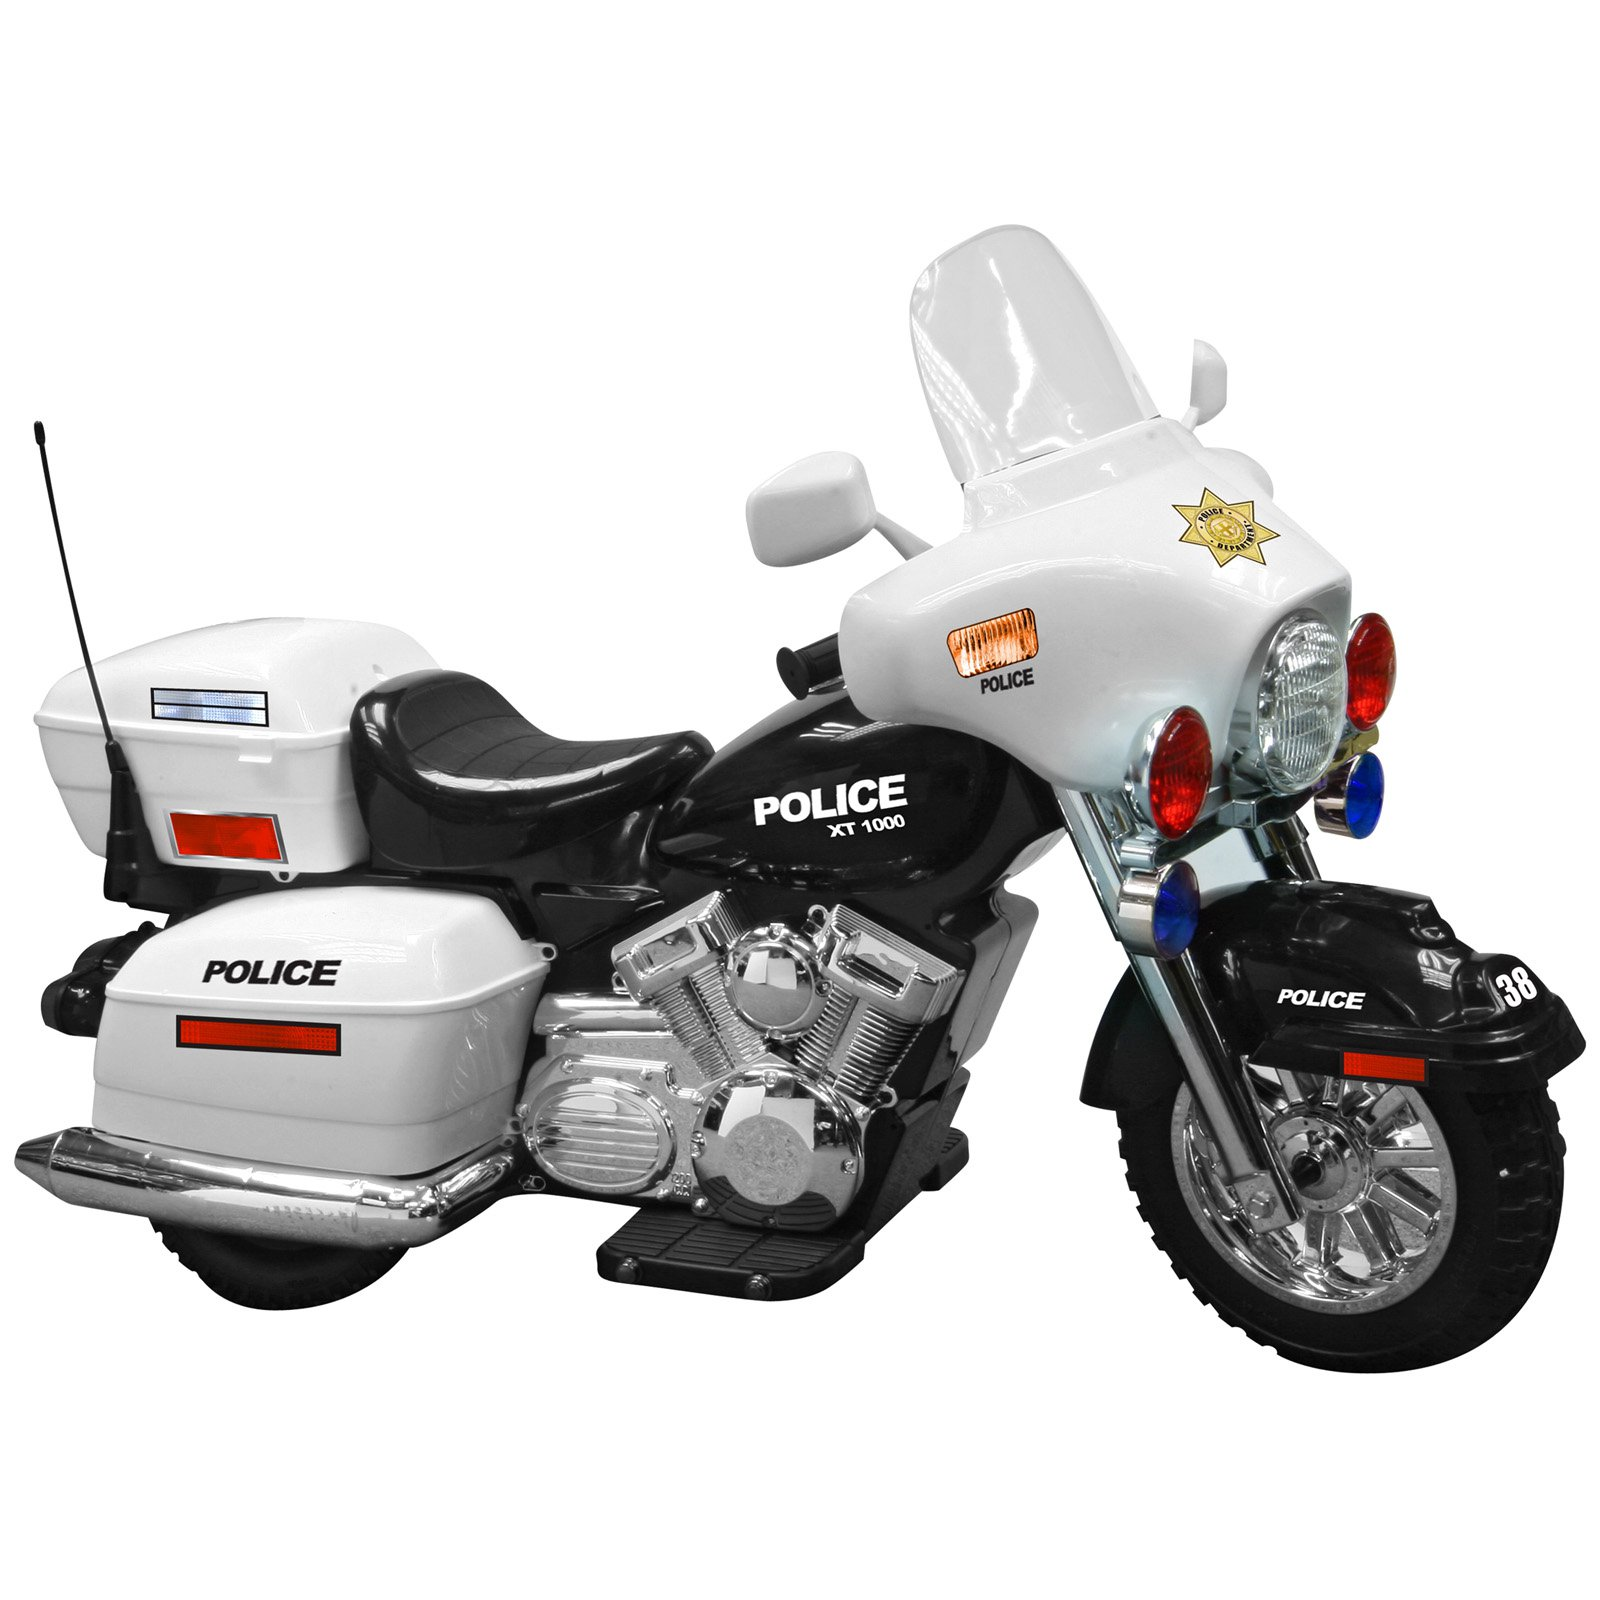 Kid Motorz Police Motorcycle Battery Powered Riding Toy by National Products Ltd